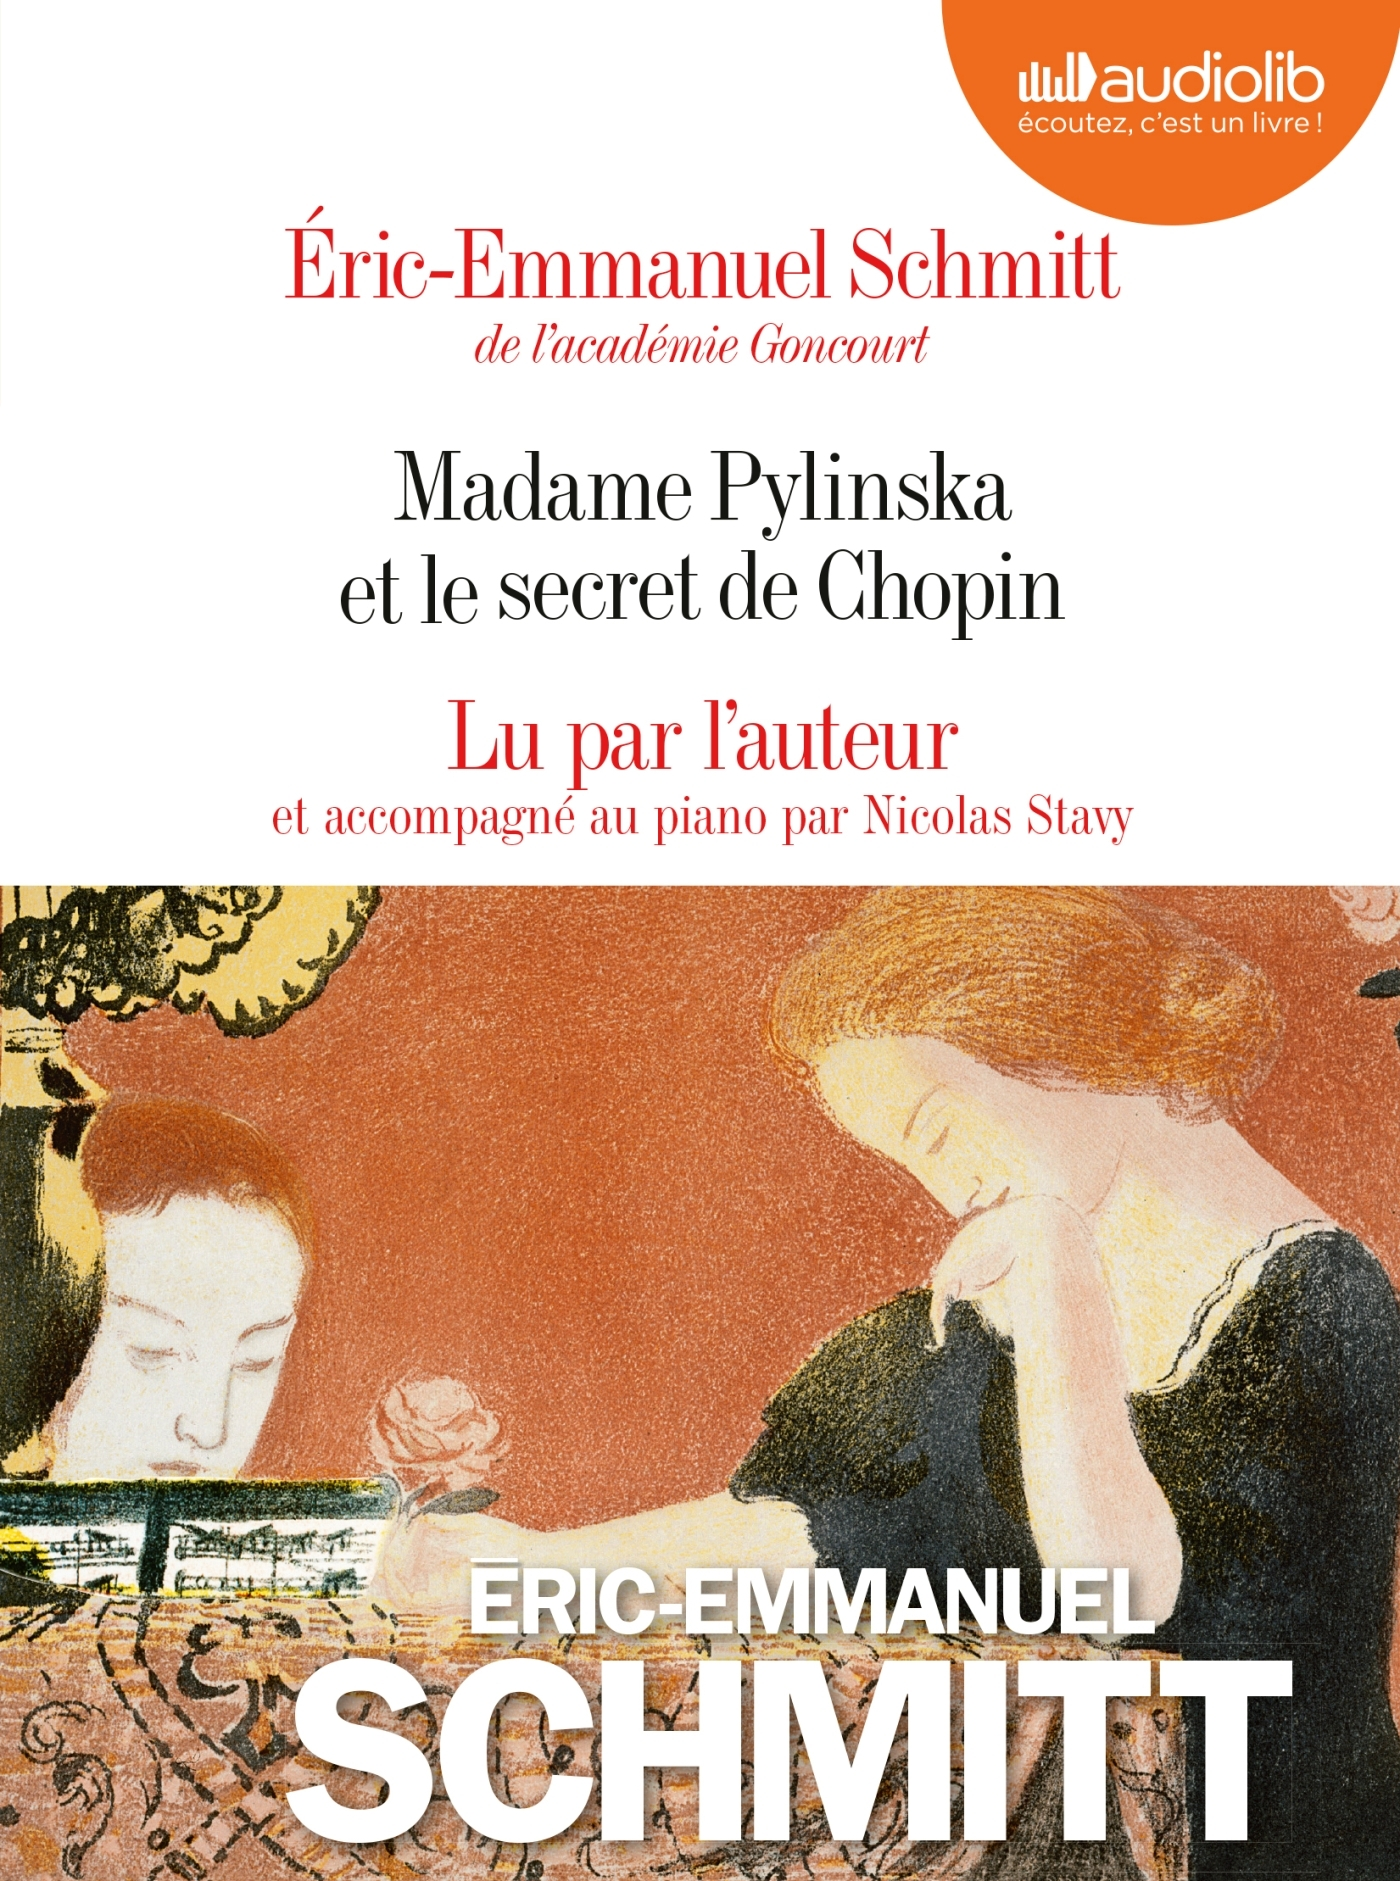 MADAME PYLINSKA ET LE SECRET DE CHOPIN - LE CYCLE DE L'INVISIBLE - LIVRE AUDIO 2 CD AUDIO